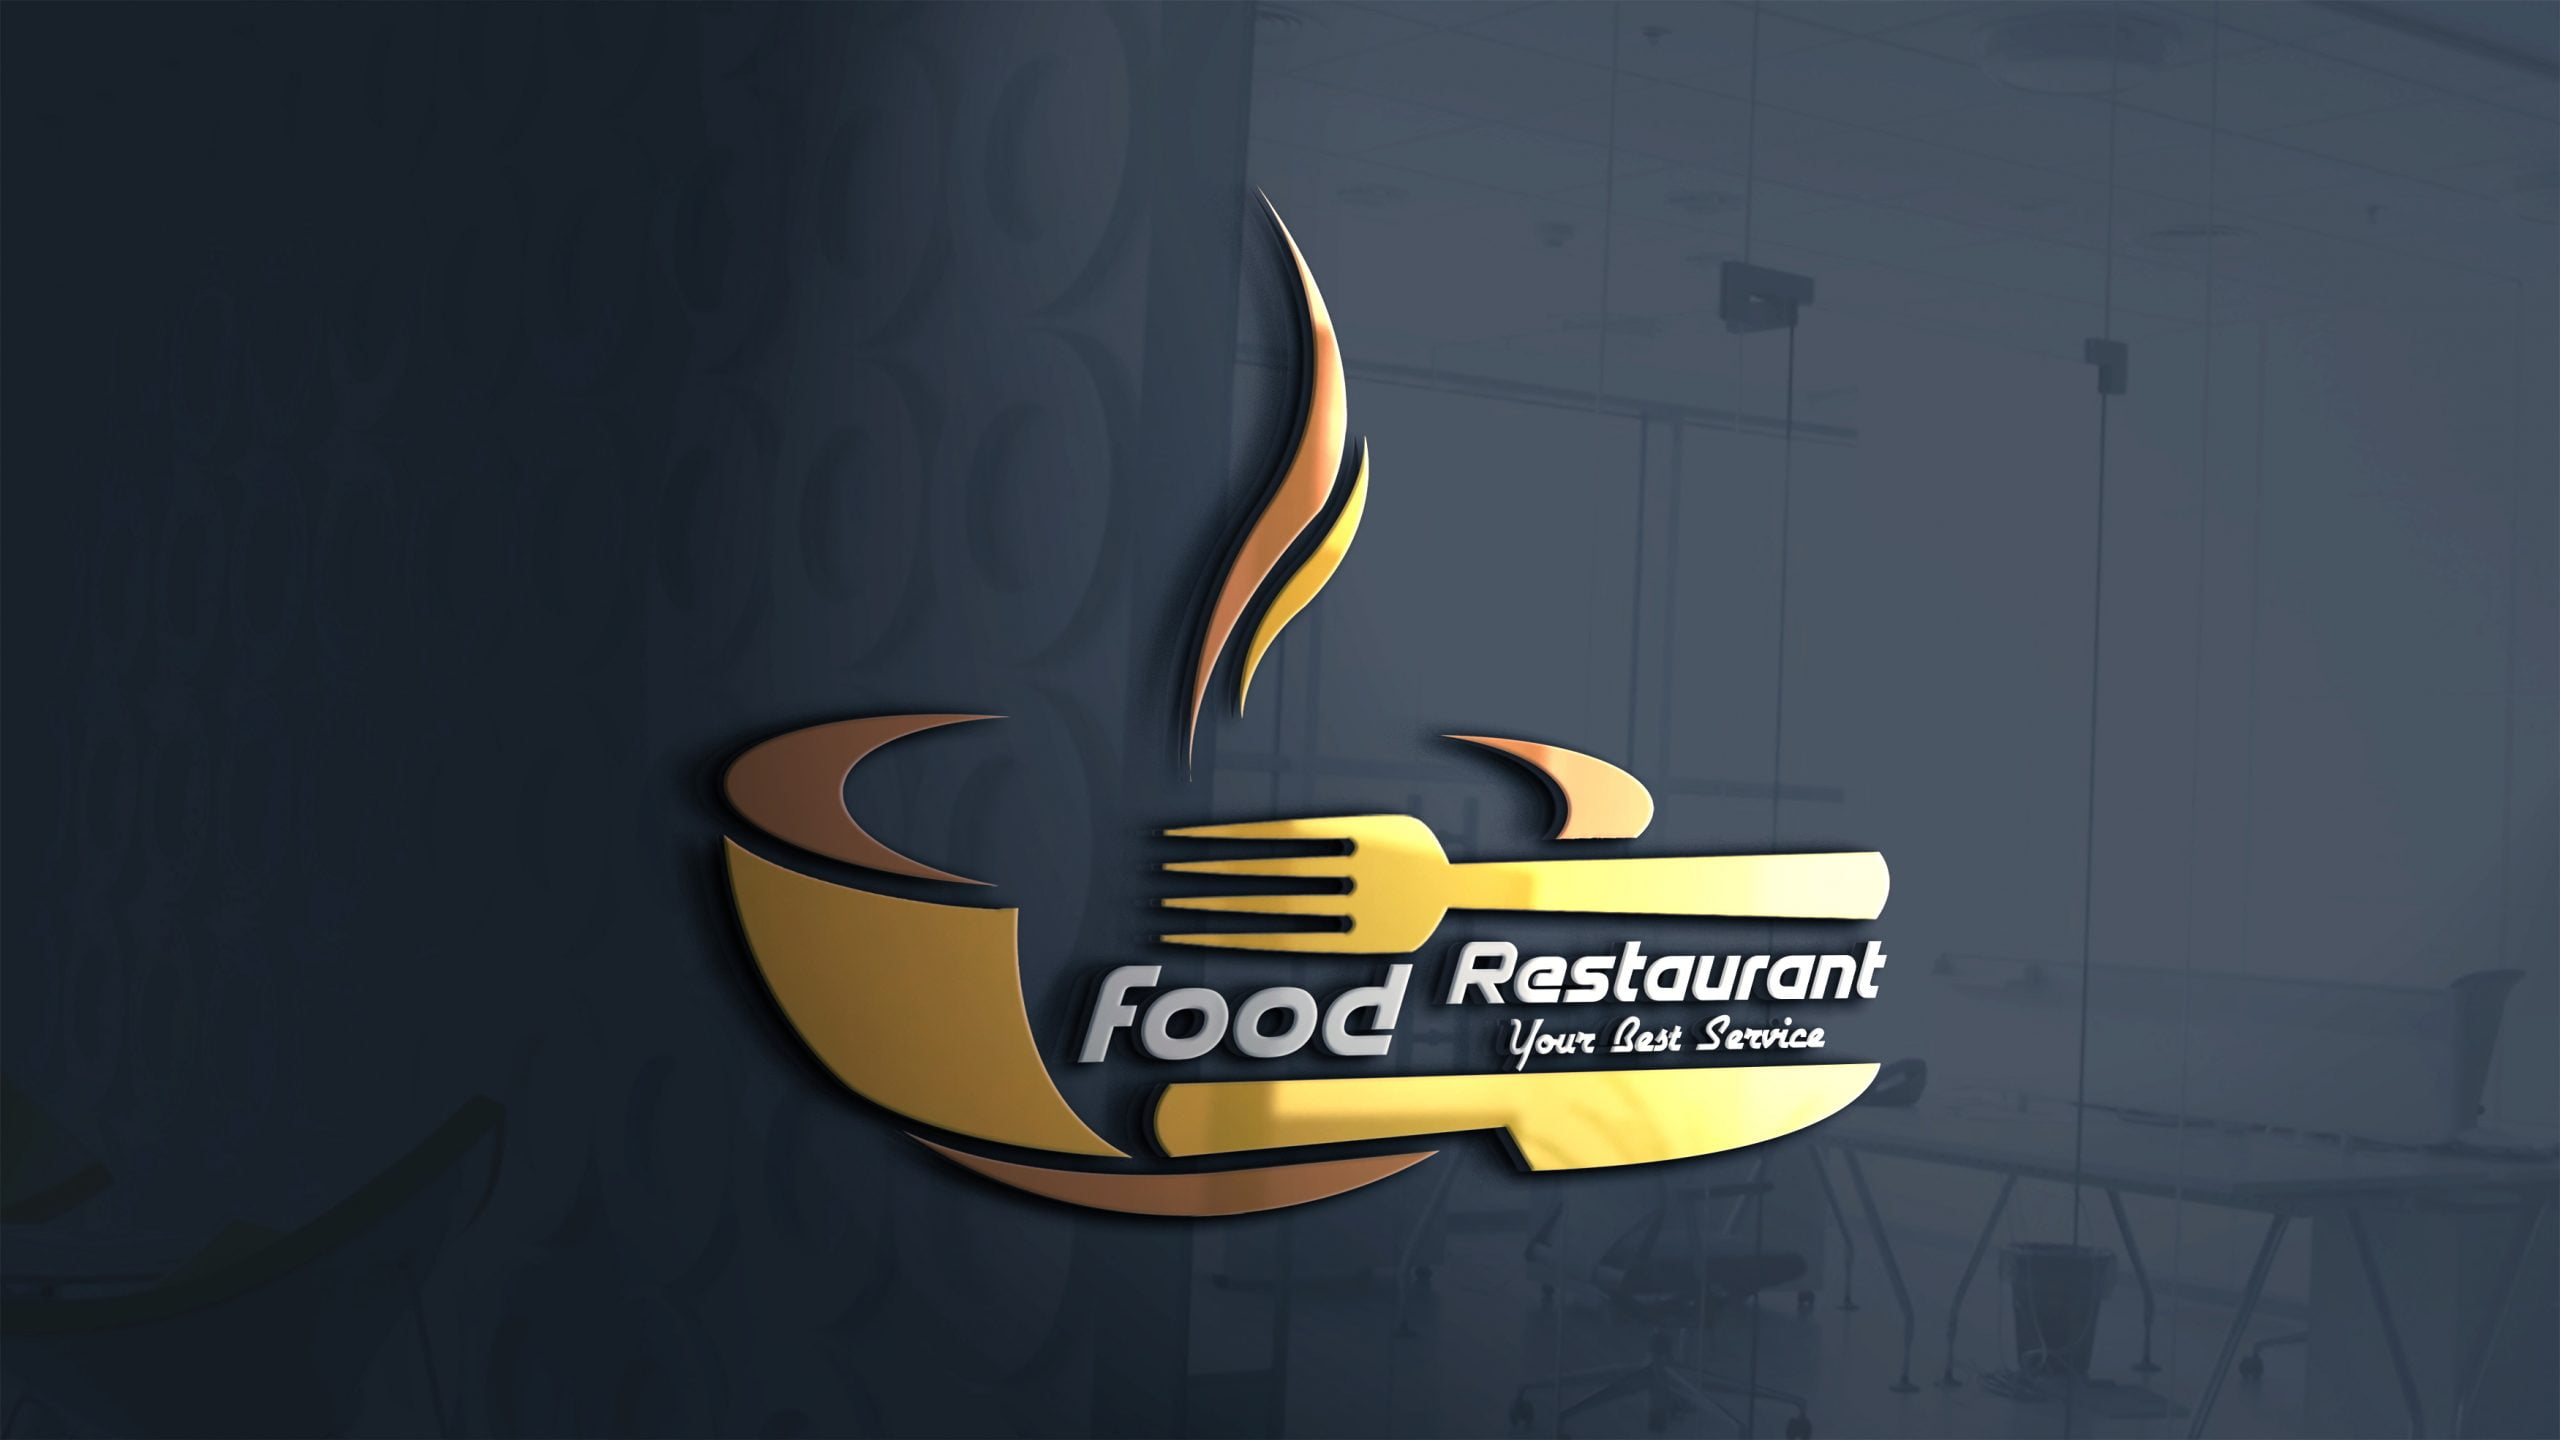 Restaurant logo design free template